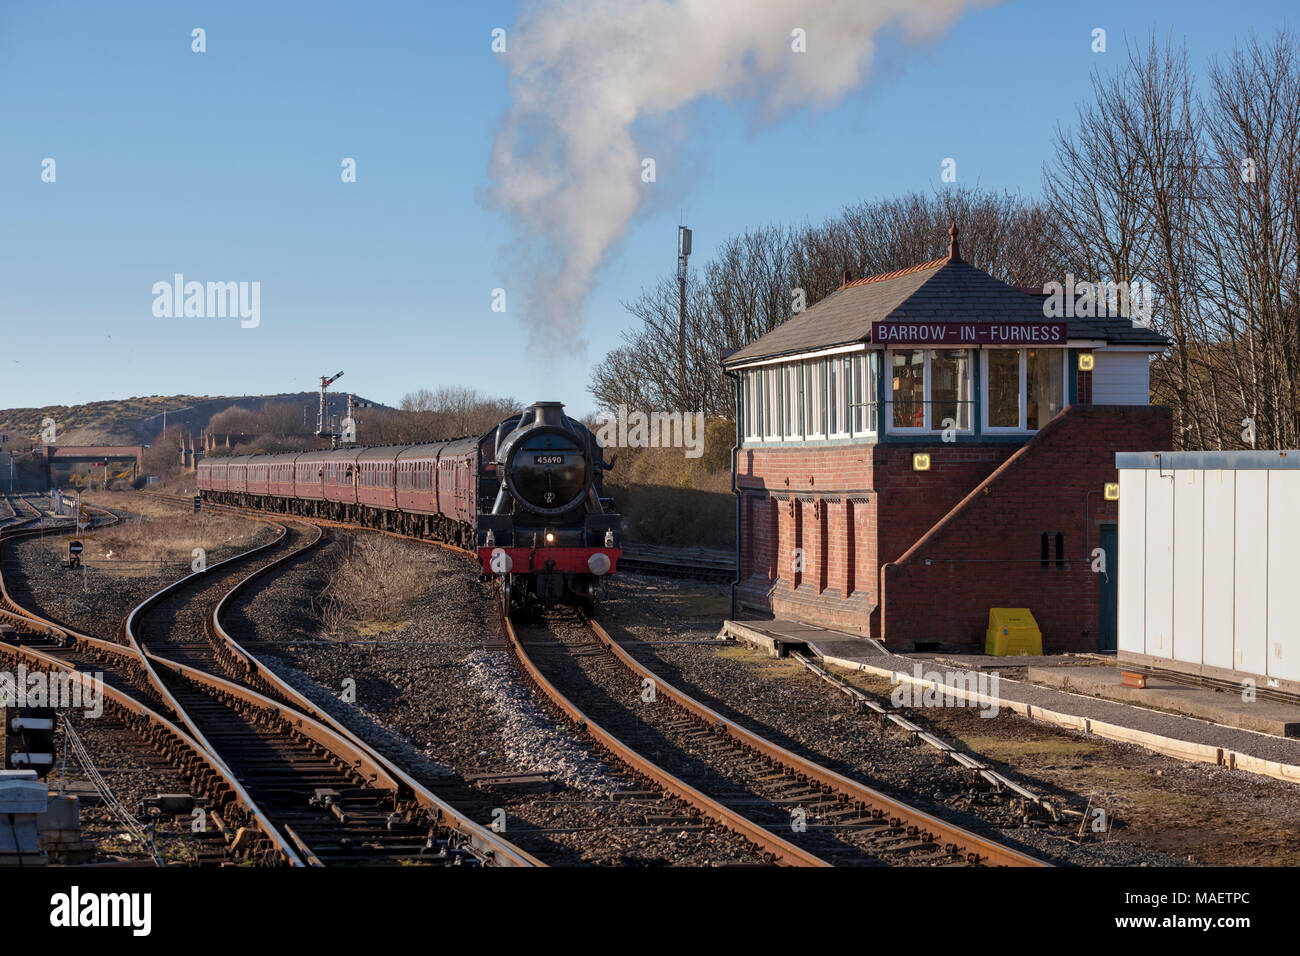 LMS Steam locomotive 45690 Leander with a Carlisle - Euston 'Cumbrian Coast Express' operated by West Coast Railways  at Barrow In Furness - Stock Image